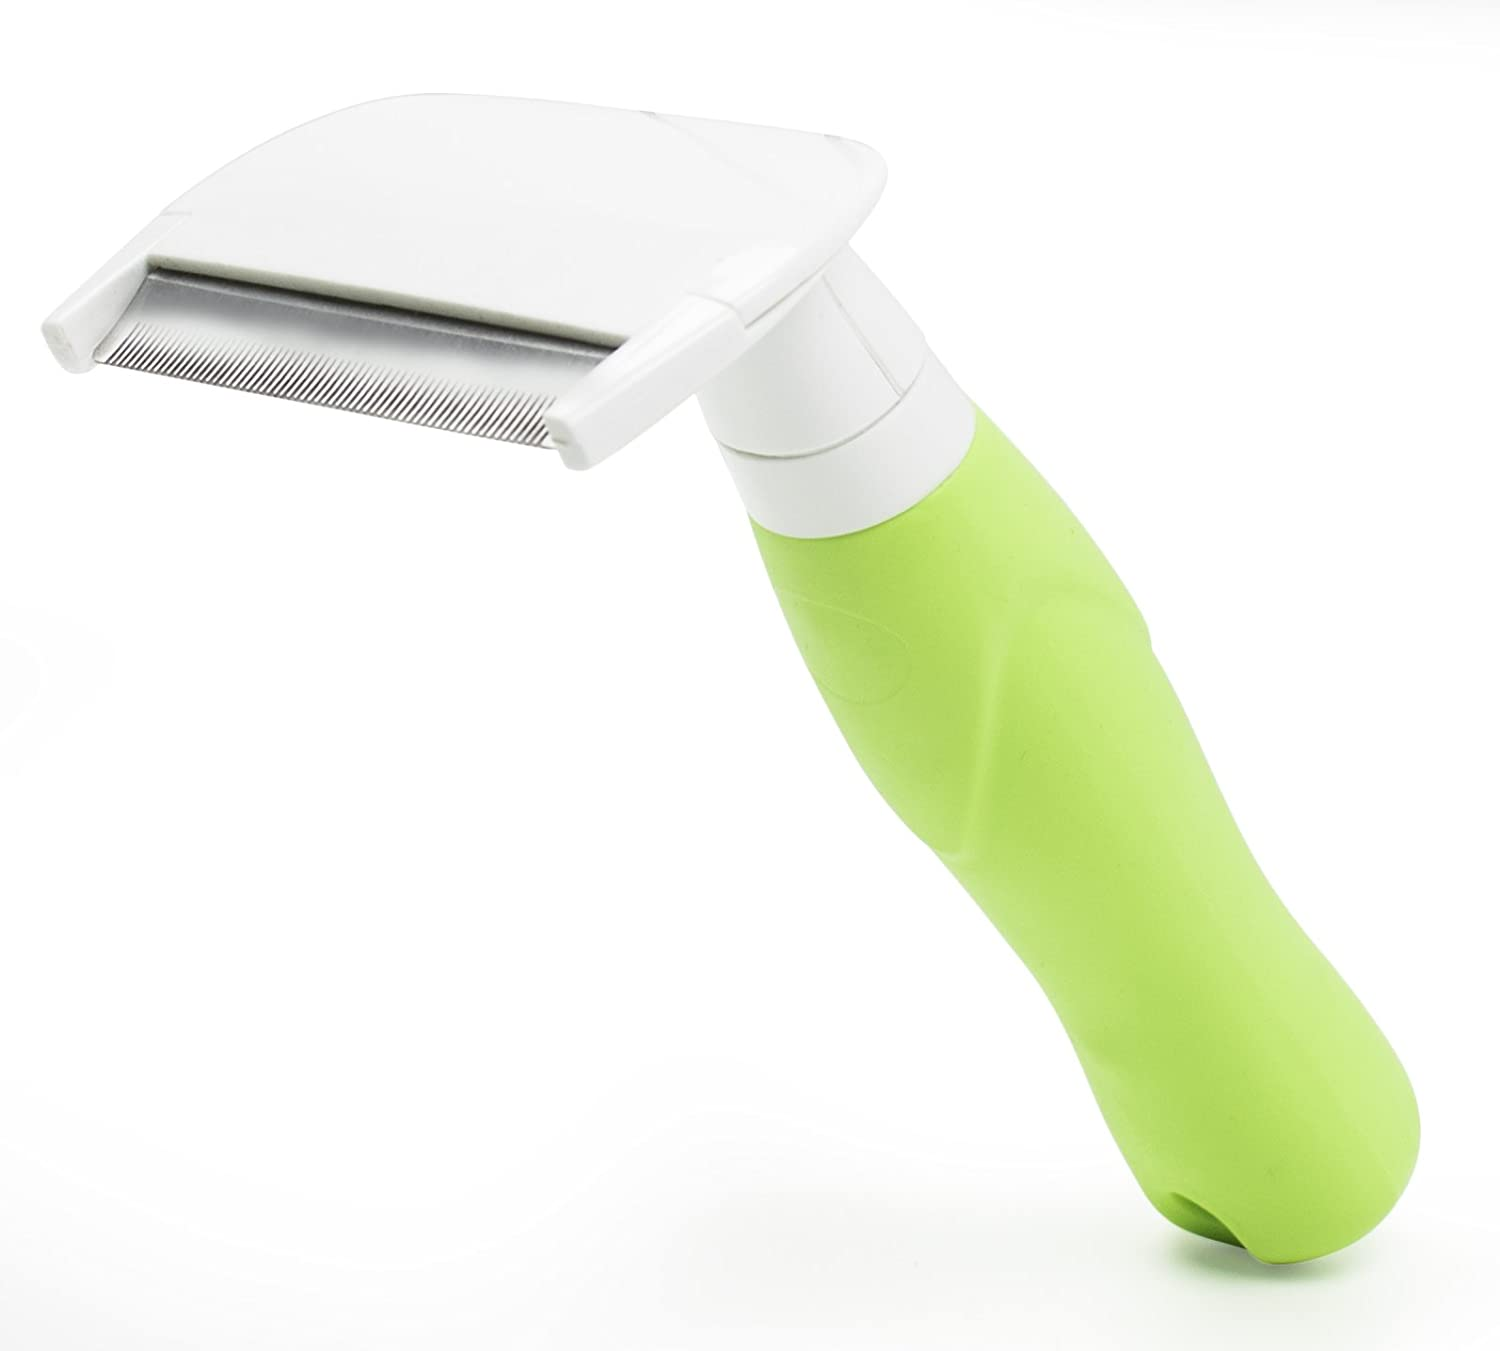 Green Bastex Pet Grooming and Deshedding Hair Brush. Reduces Shedding for Large and Small Pets by up to 95%, for Dogs and Cats Green